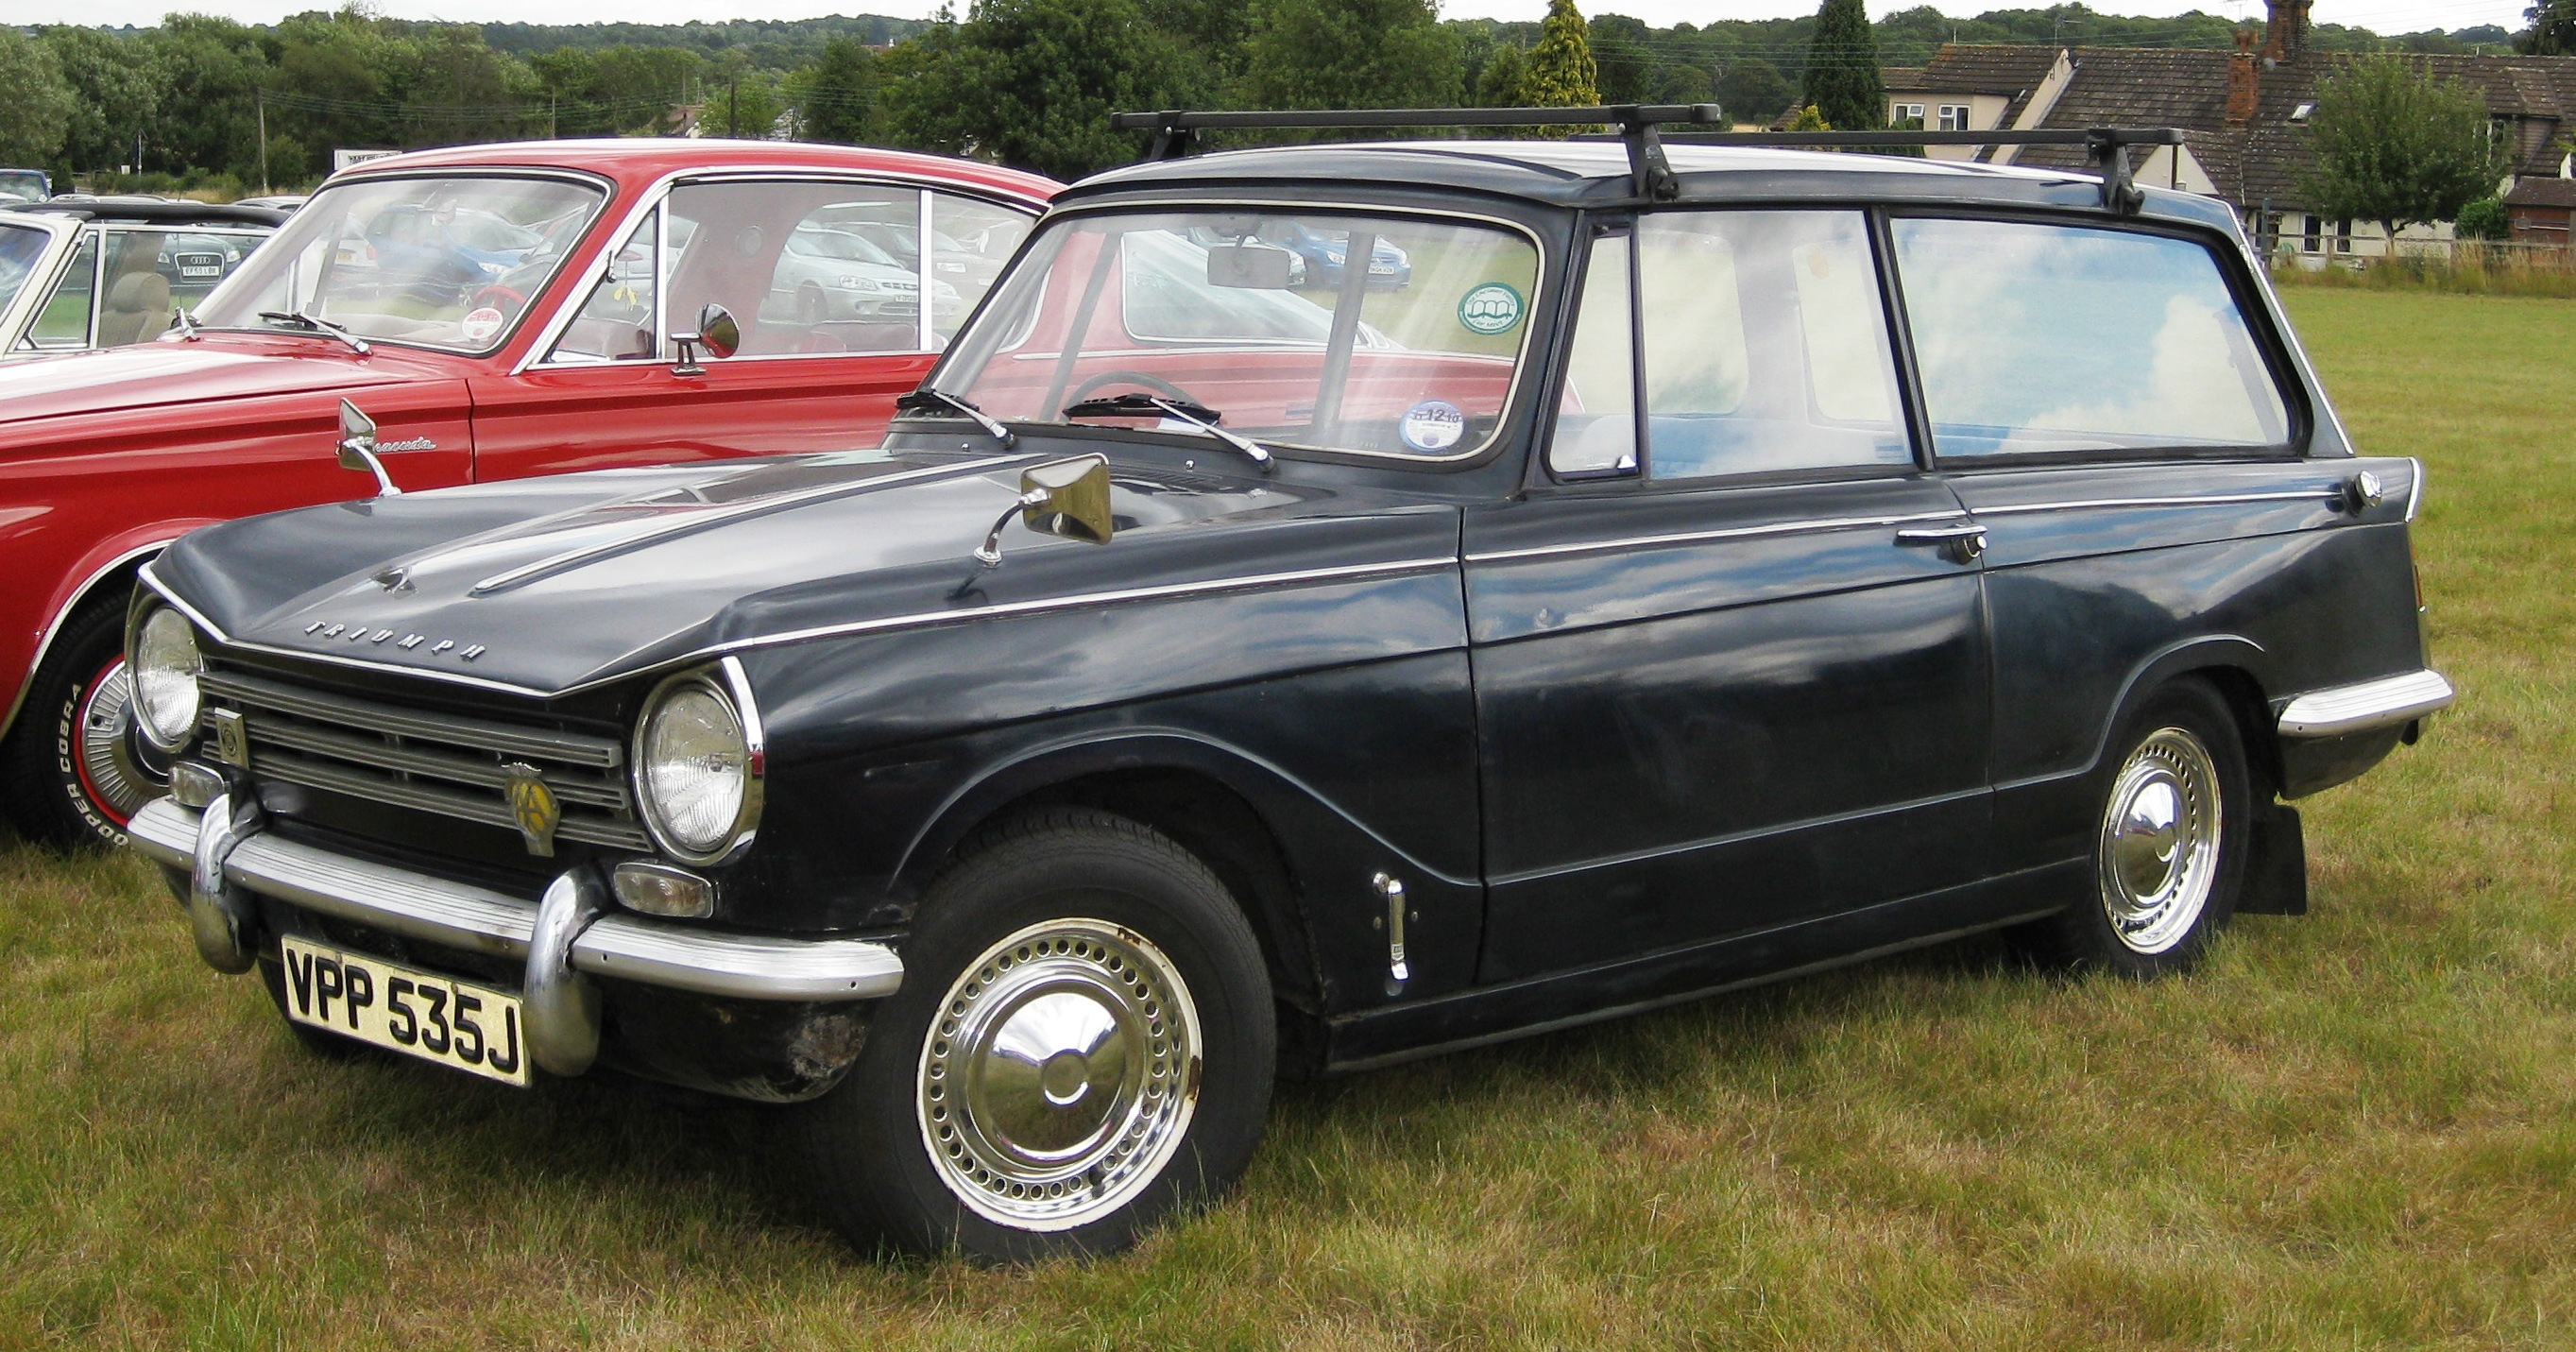 File:Triumph Herald 1360 1296cc March 1971.JPG